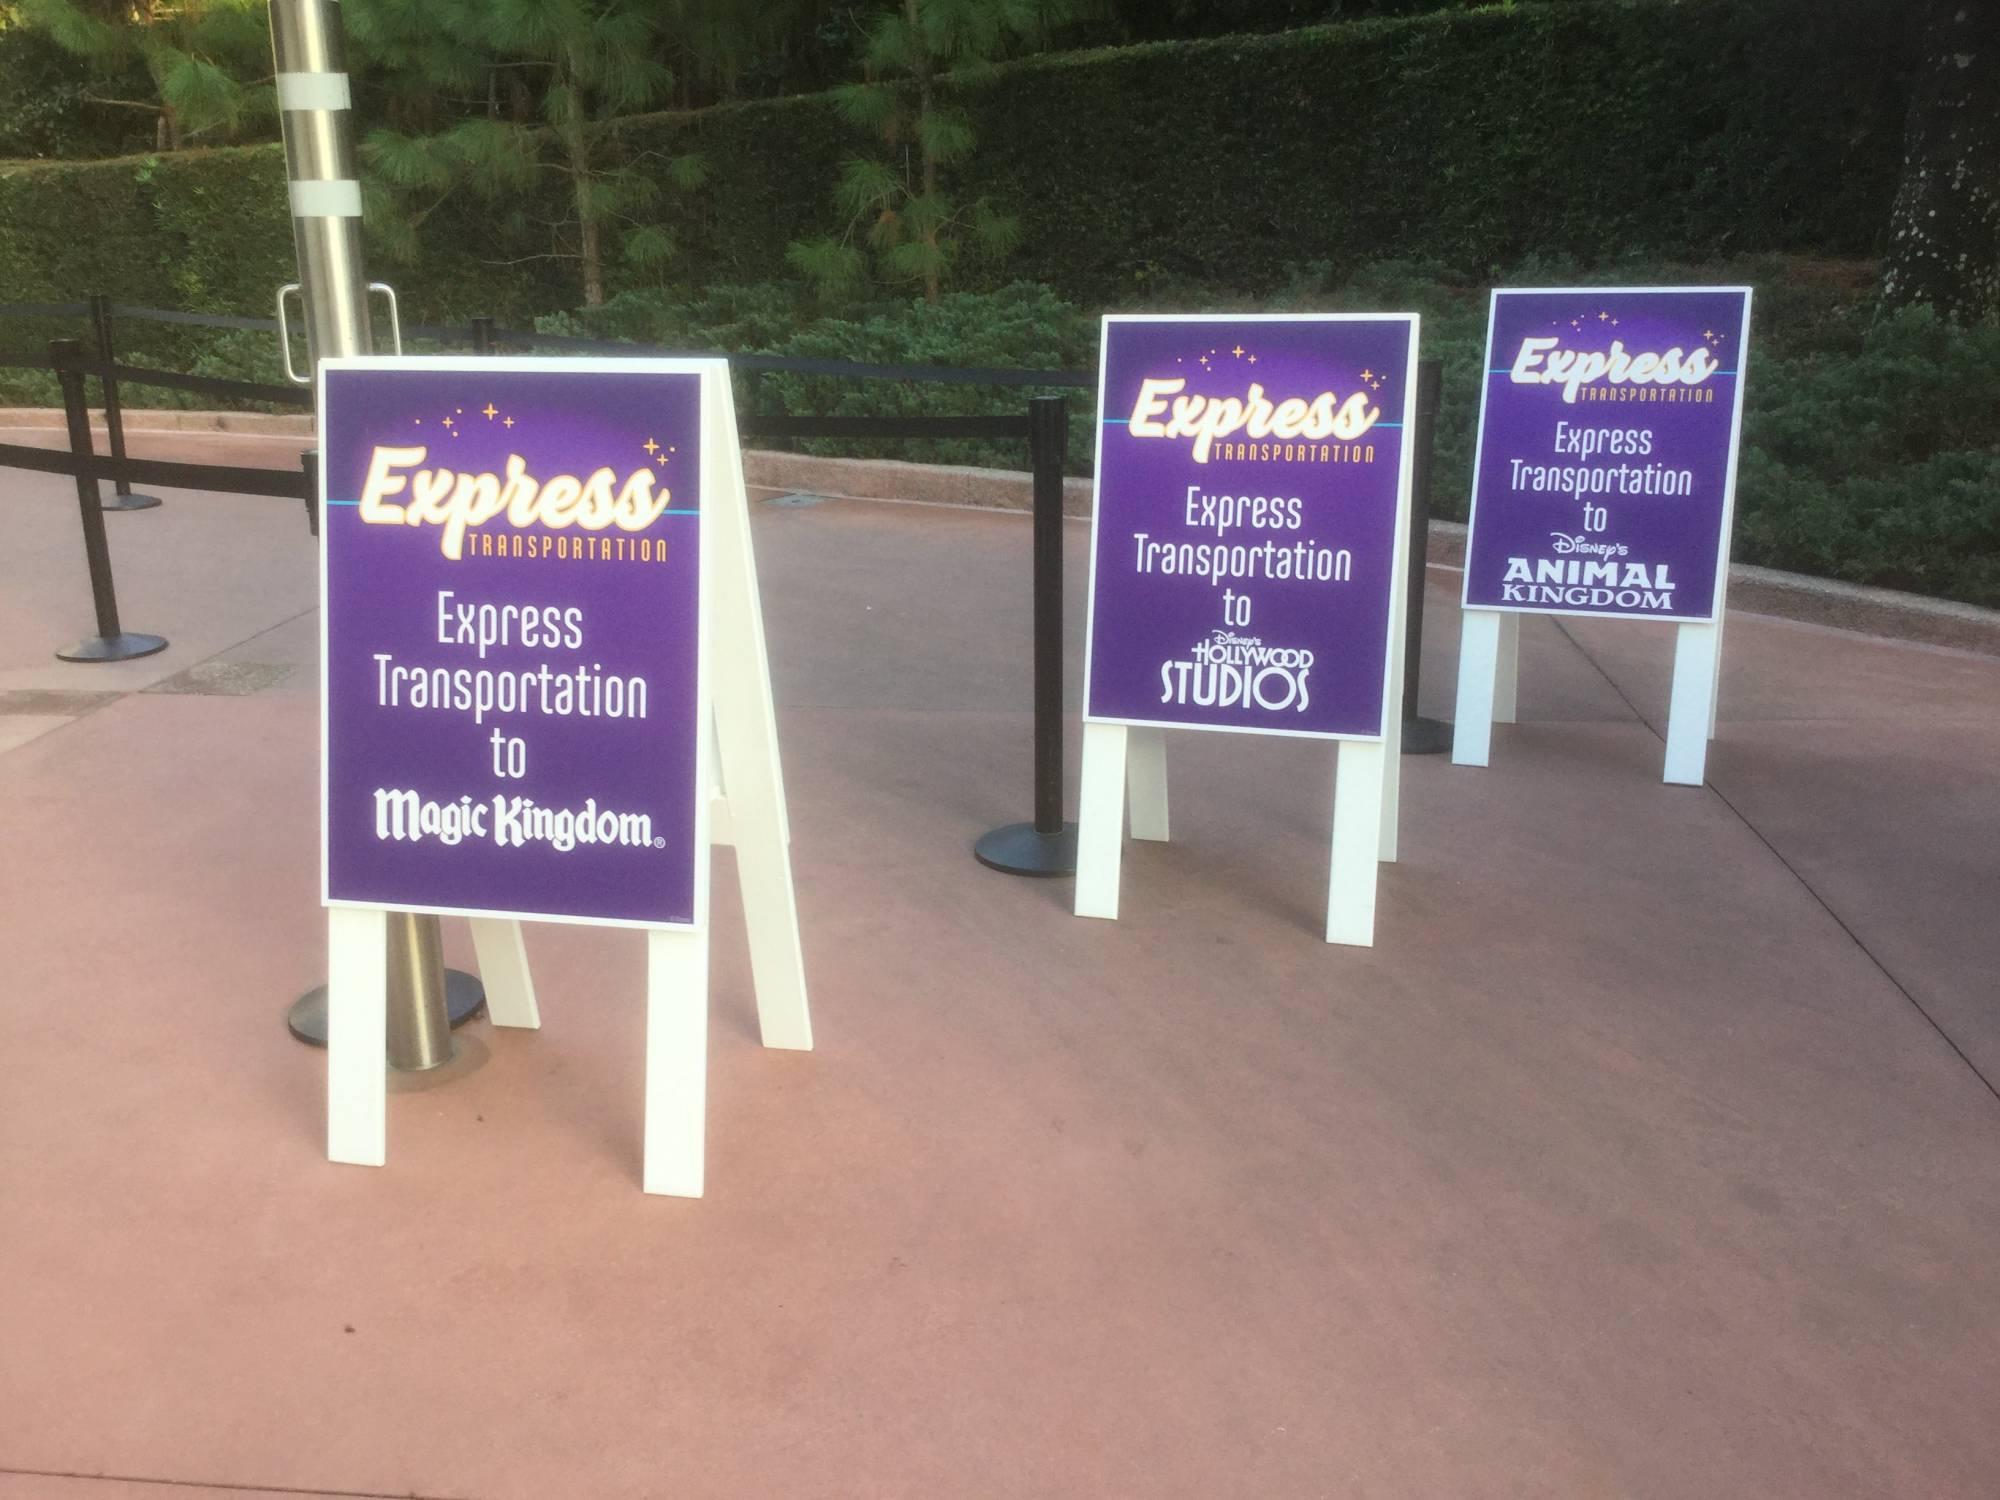 Make the most of the Express Transportation with your Park Hopper Pass | PassPorter.com